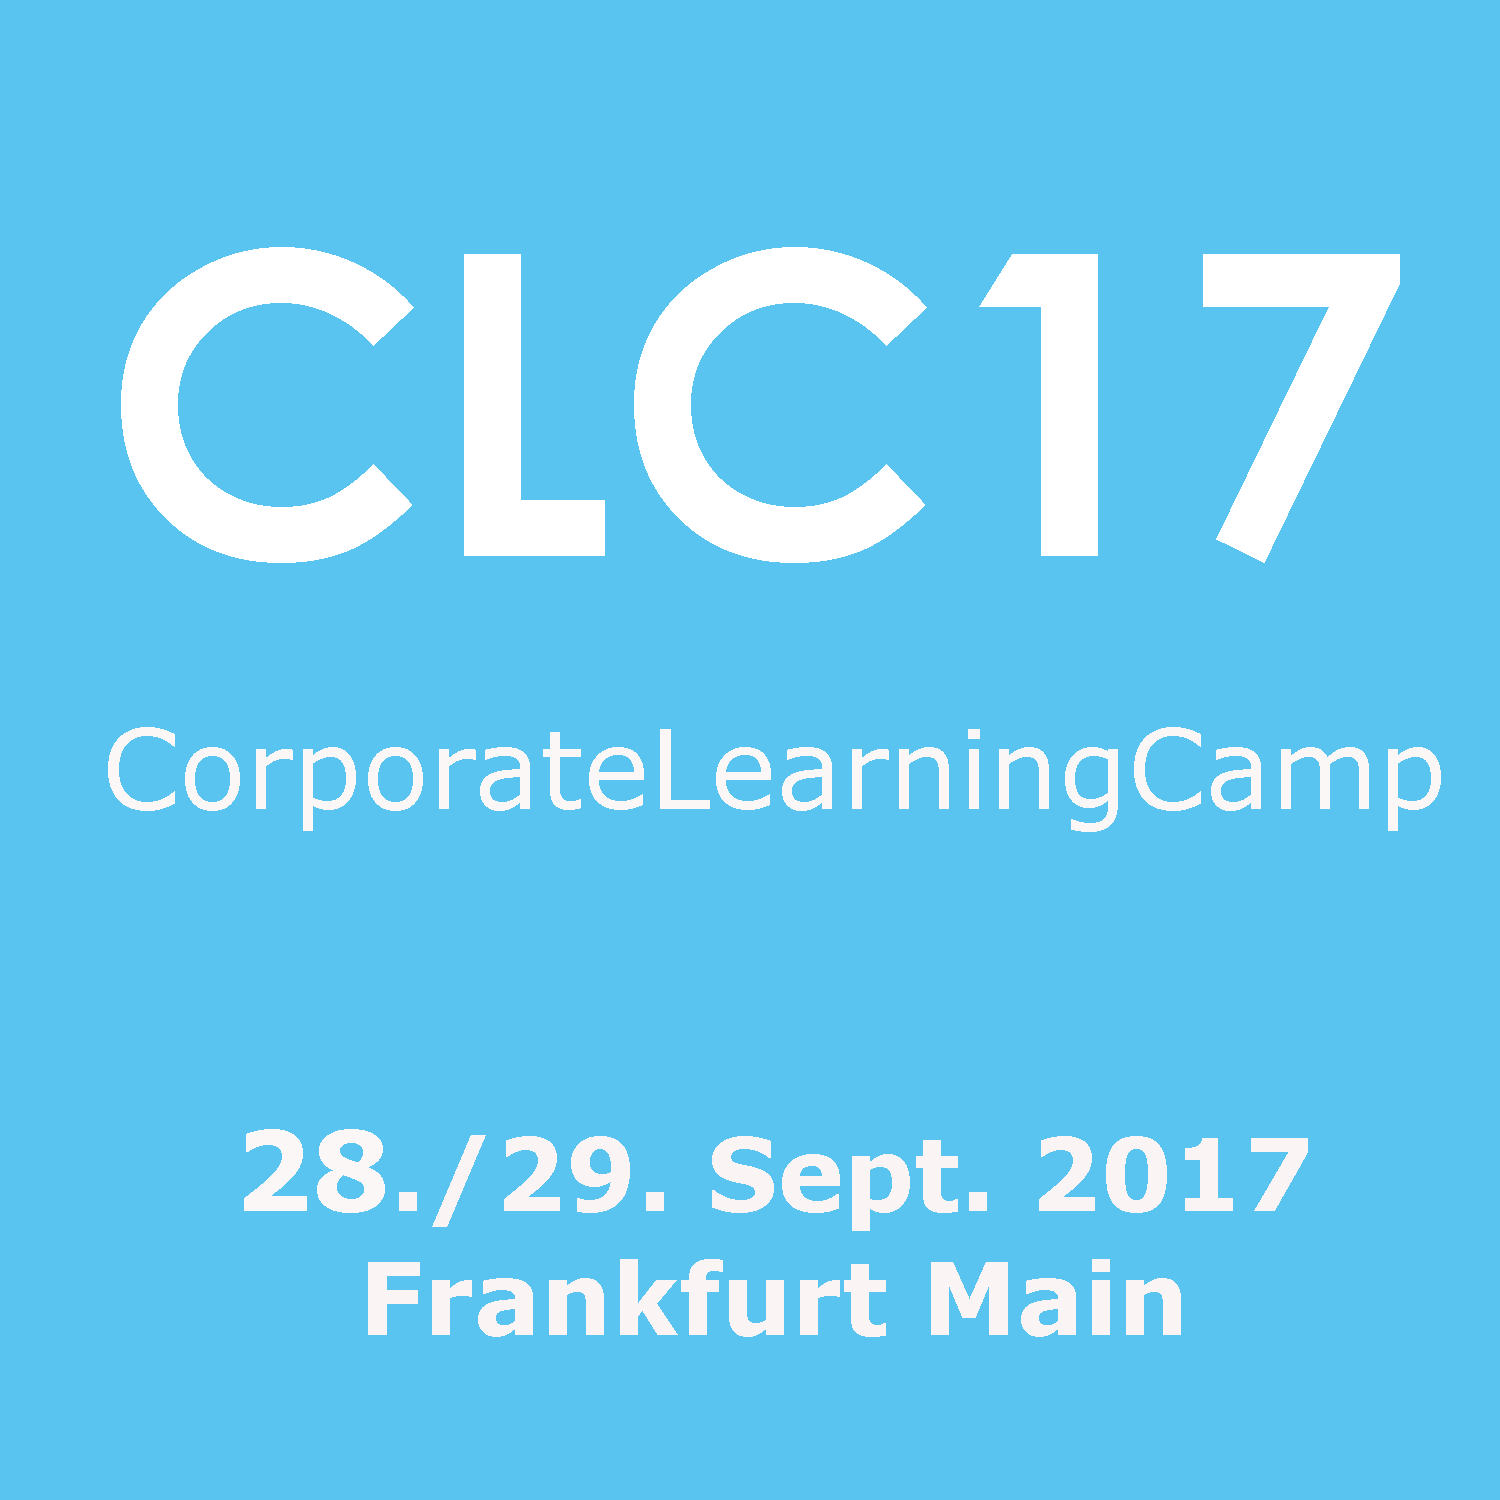 CorporateLearningCamp - CLC17